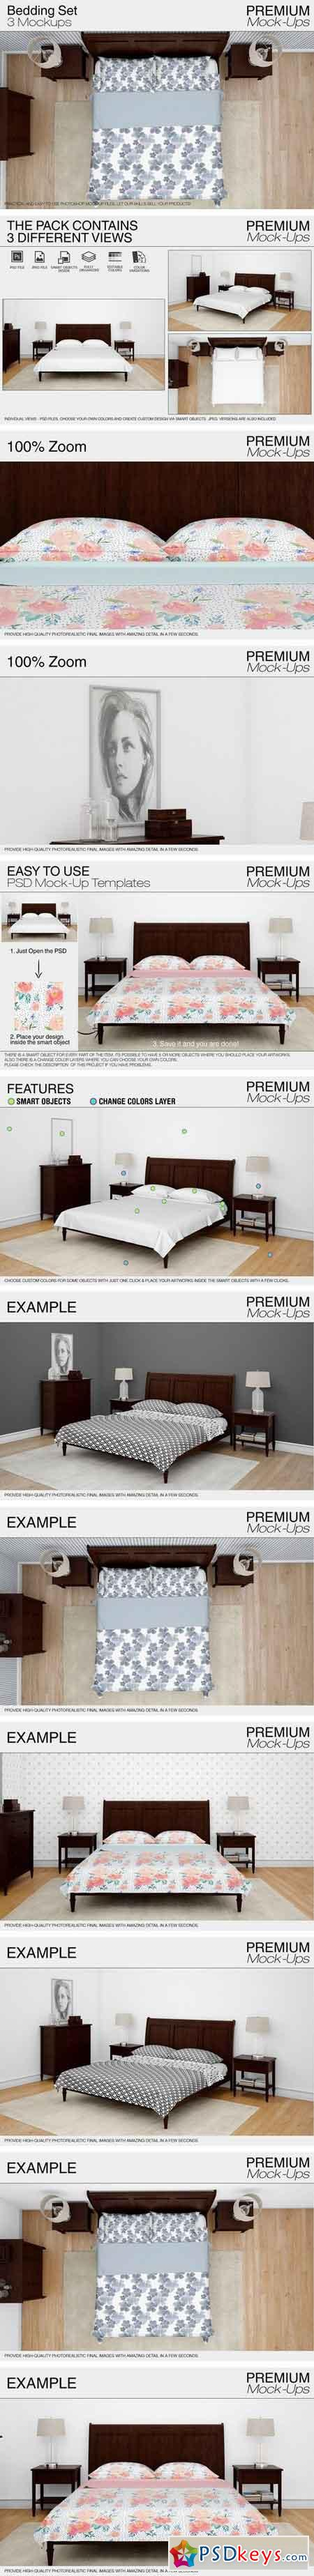 Bedding Mockup Set 2095846